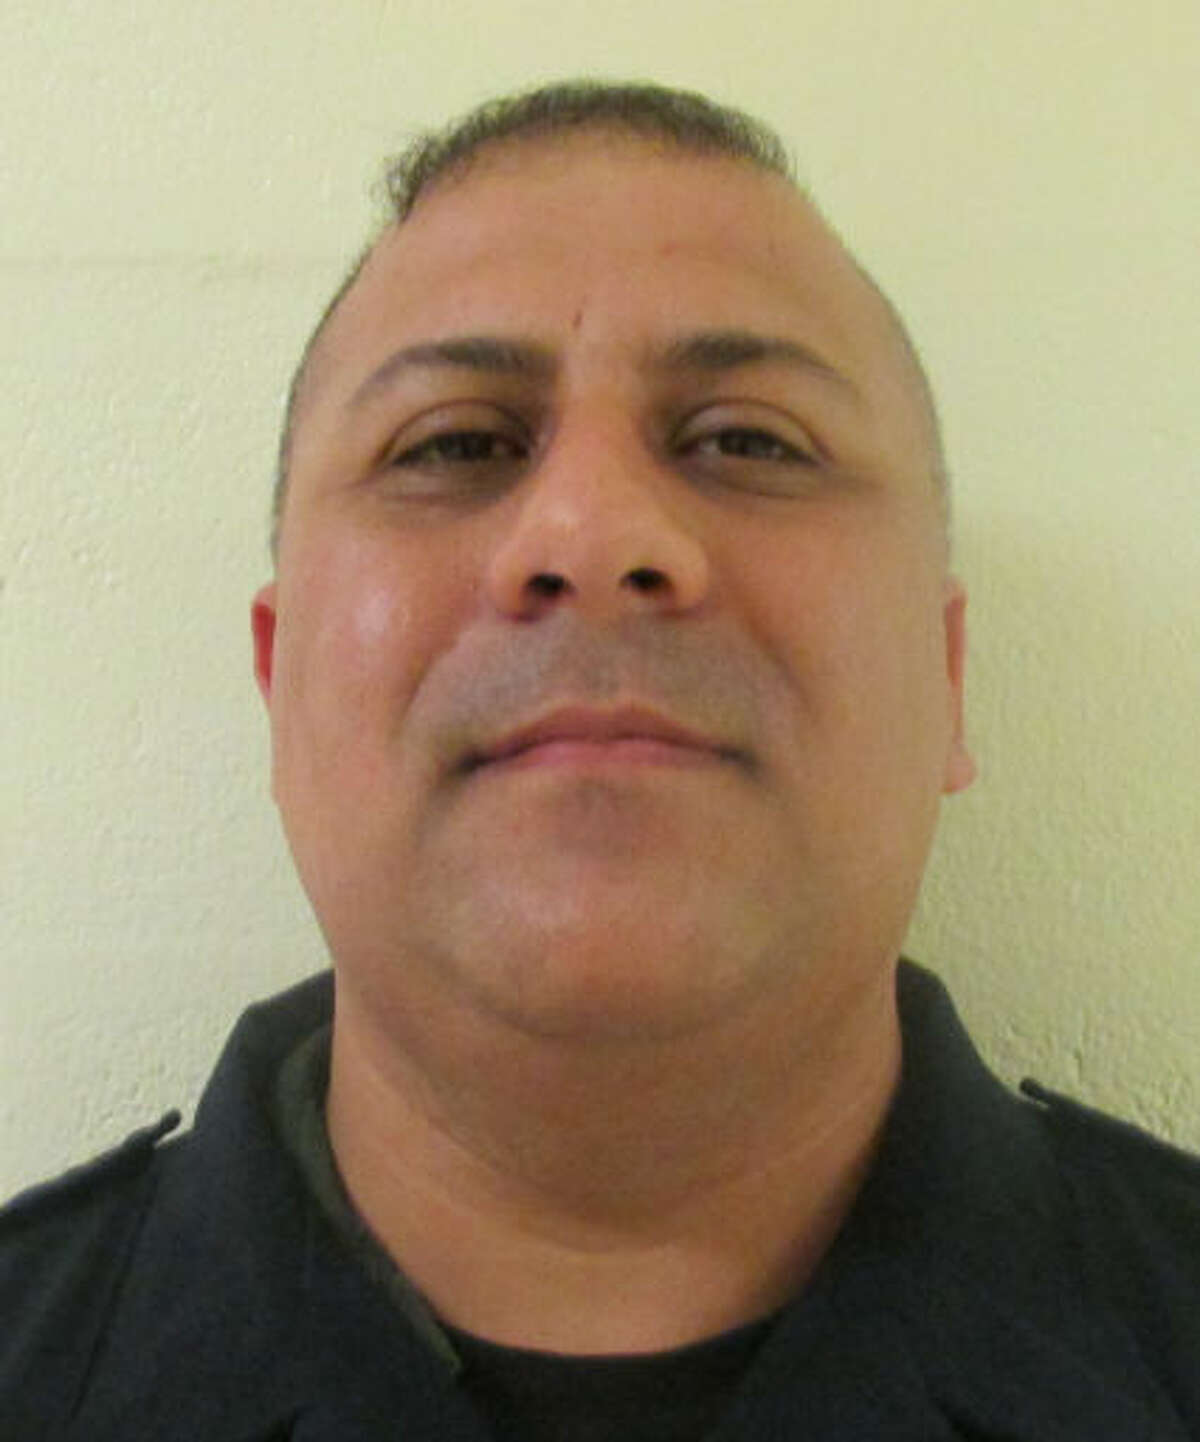 Former Bexar County Sheriff's Deputy Jaime Soto, 42, was charged with official oppression.